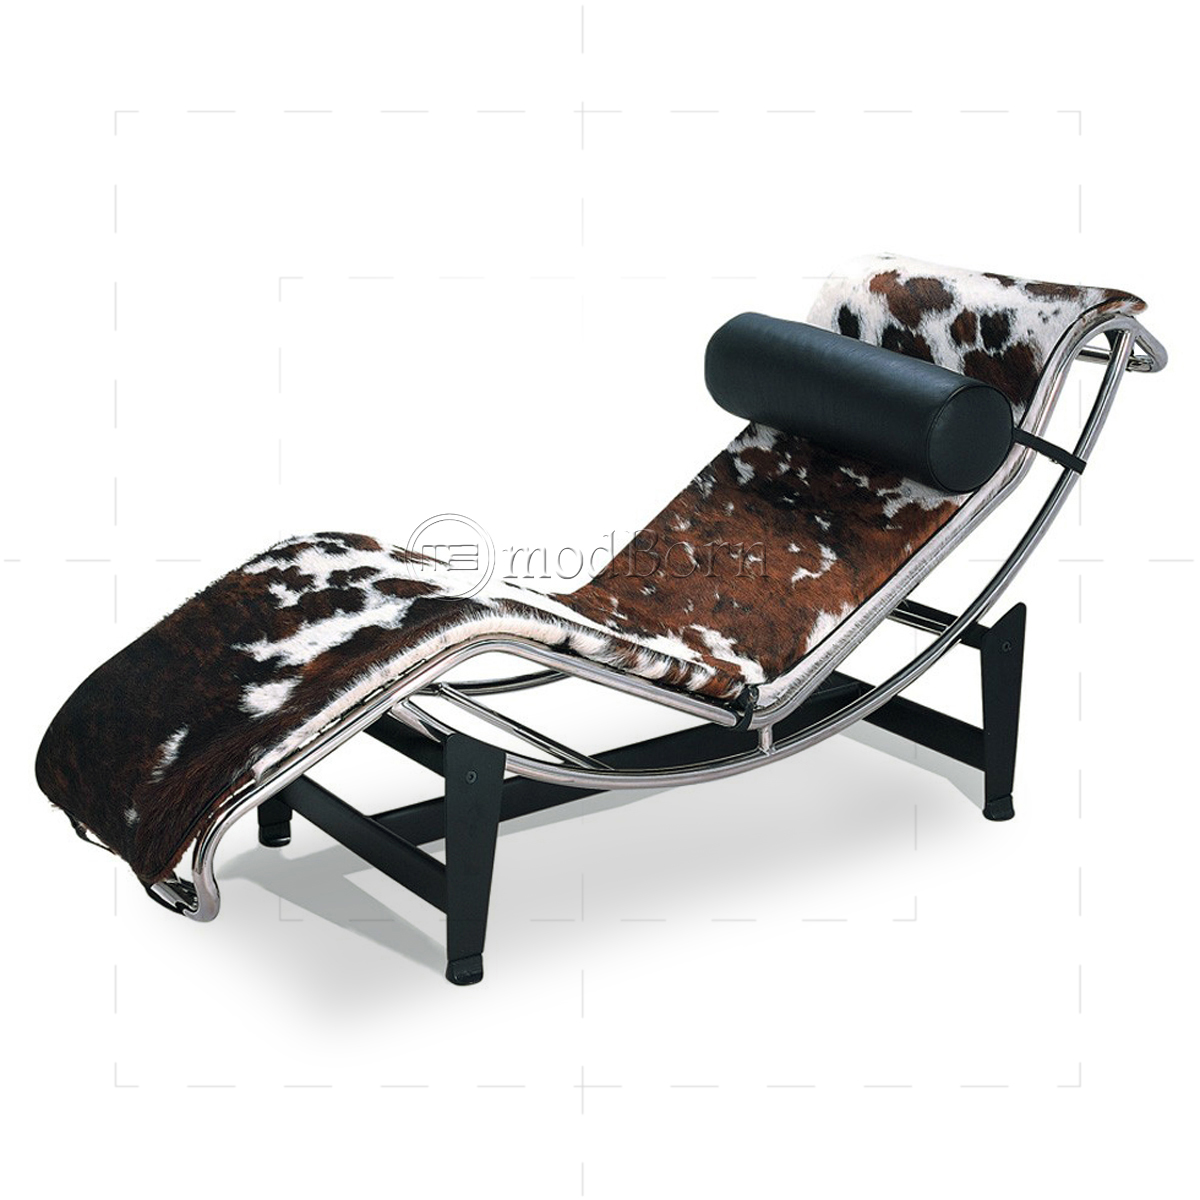 Le corbusier style lc4 chaise longue pony leather replica for Chaise longue le corbusier cad